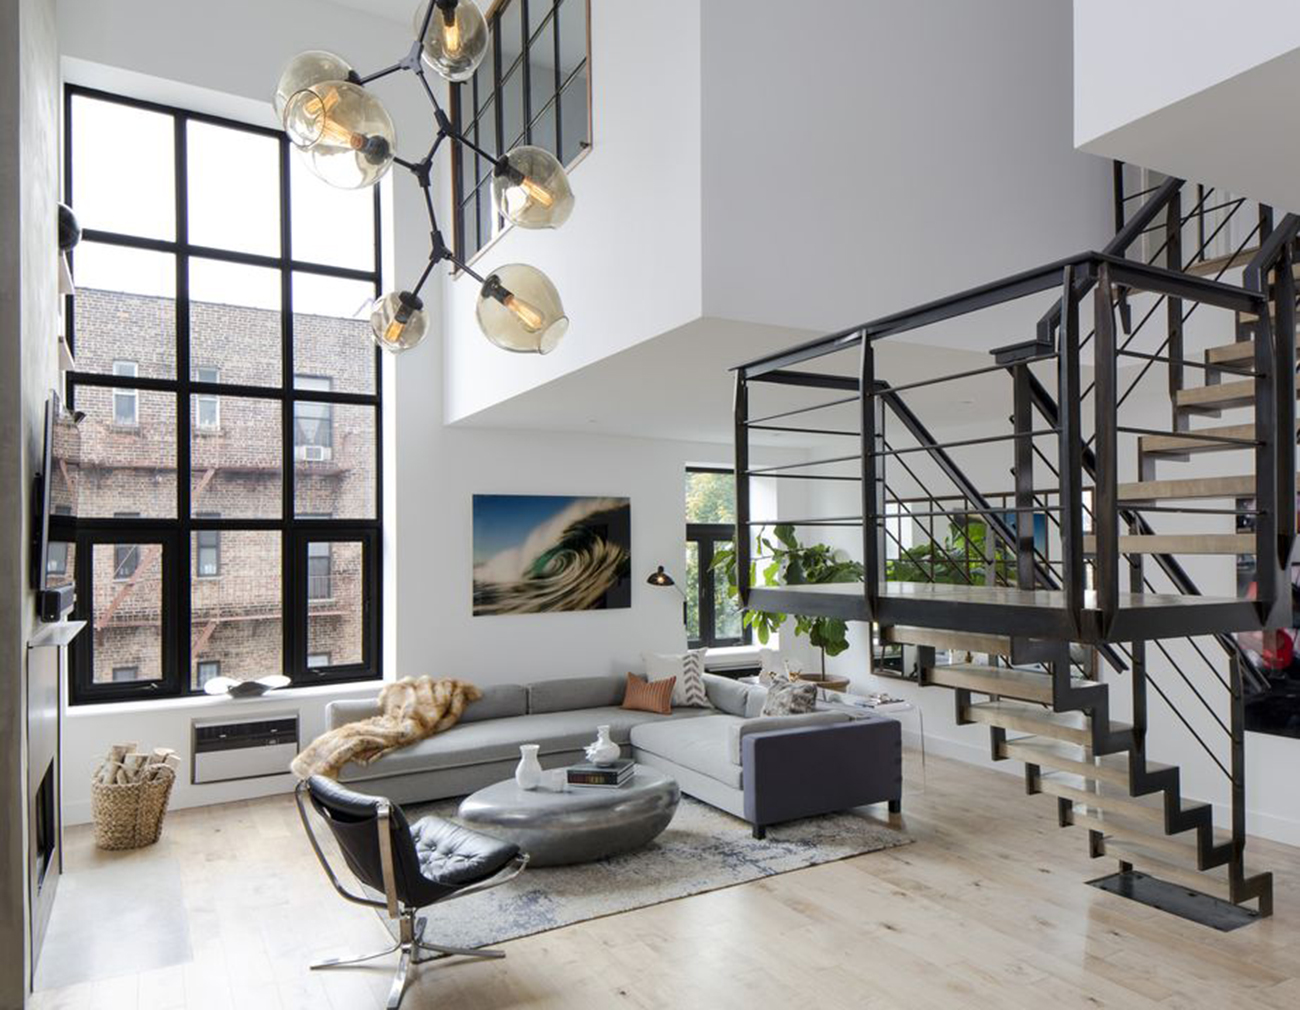 6 Of The Best New York Apartments To Rent